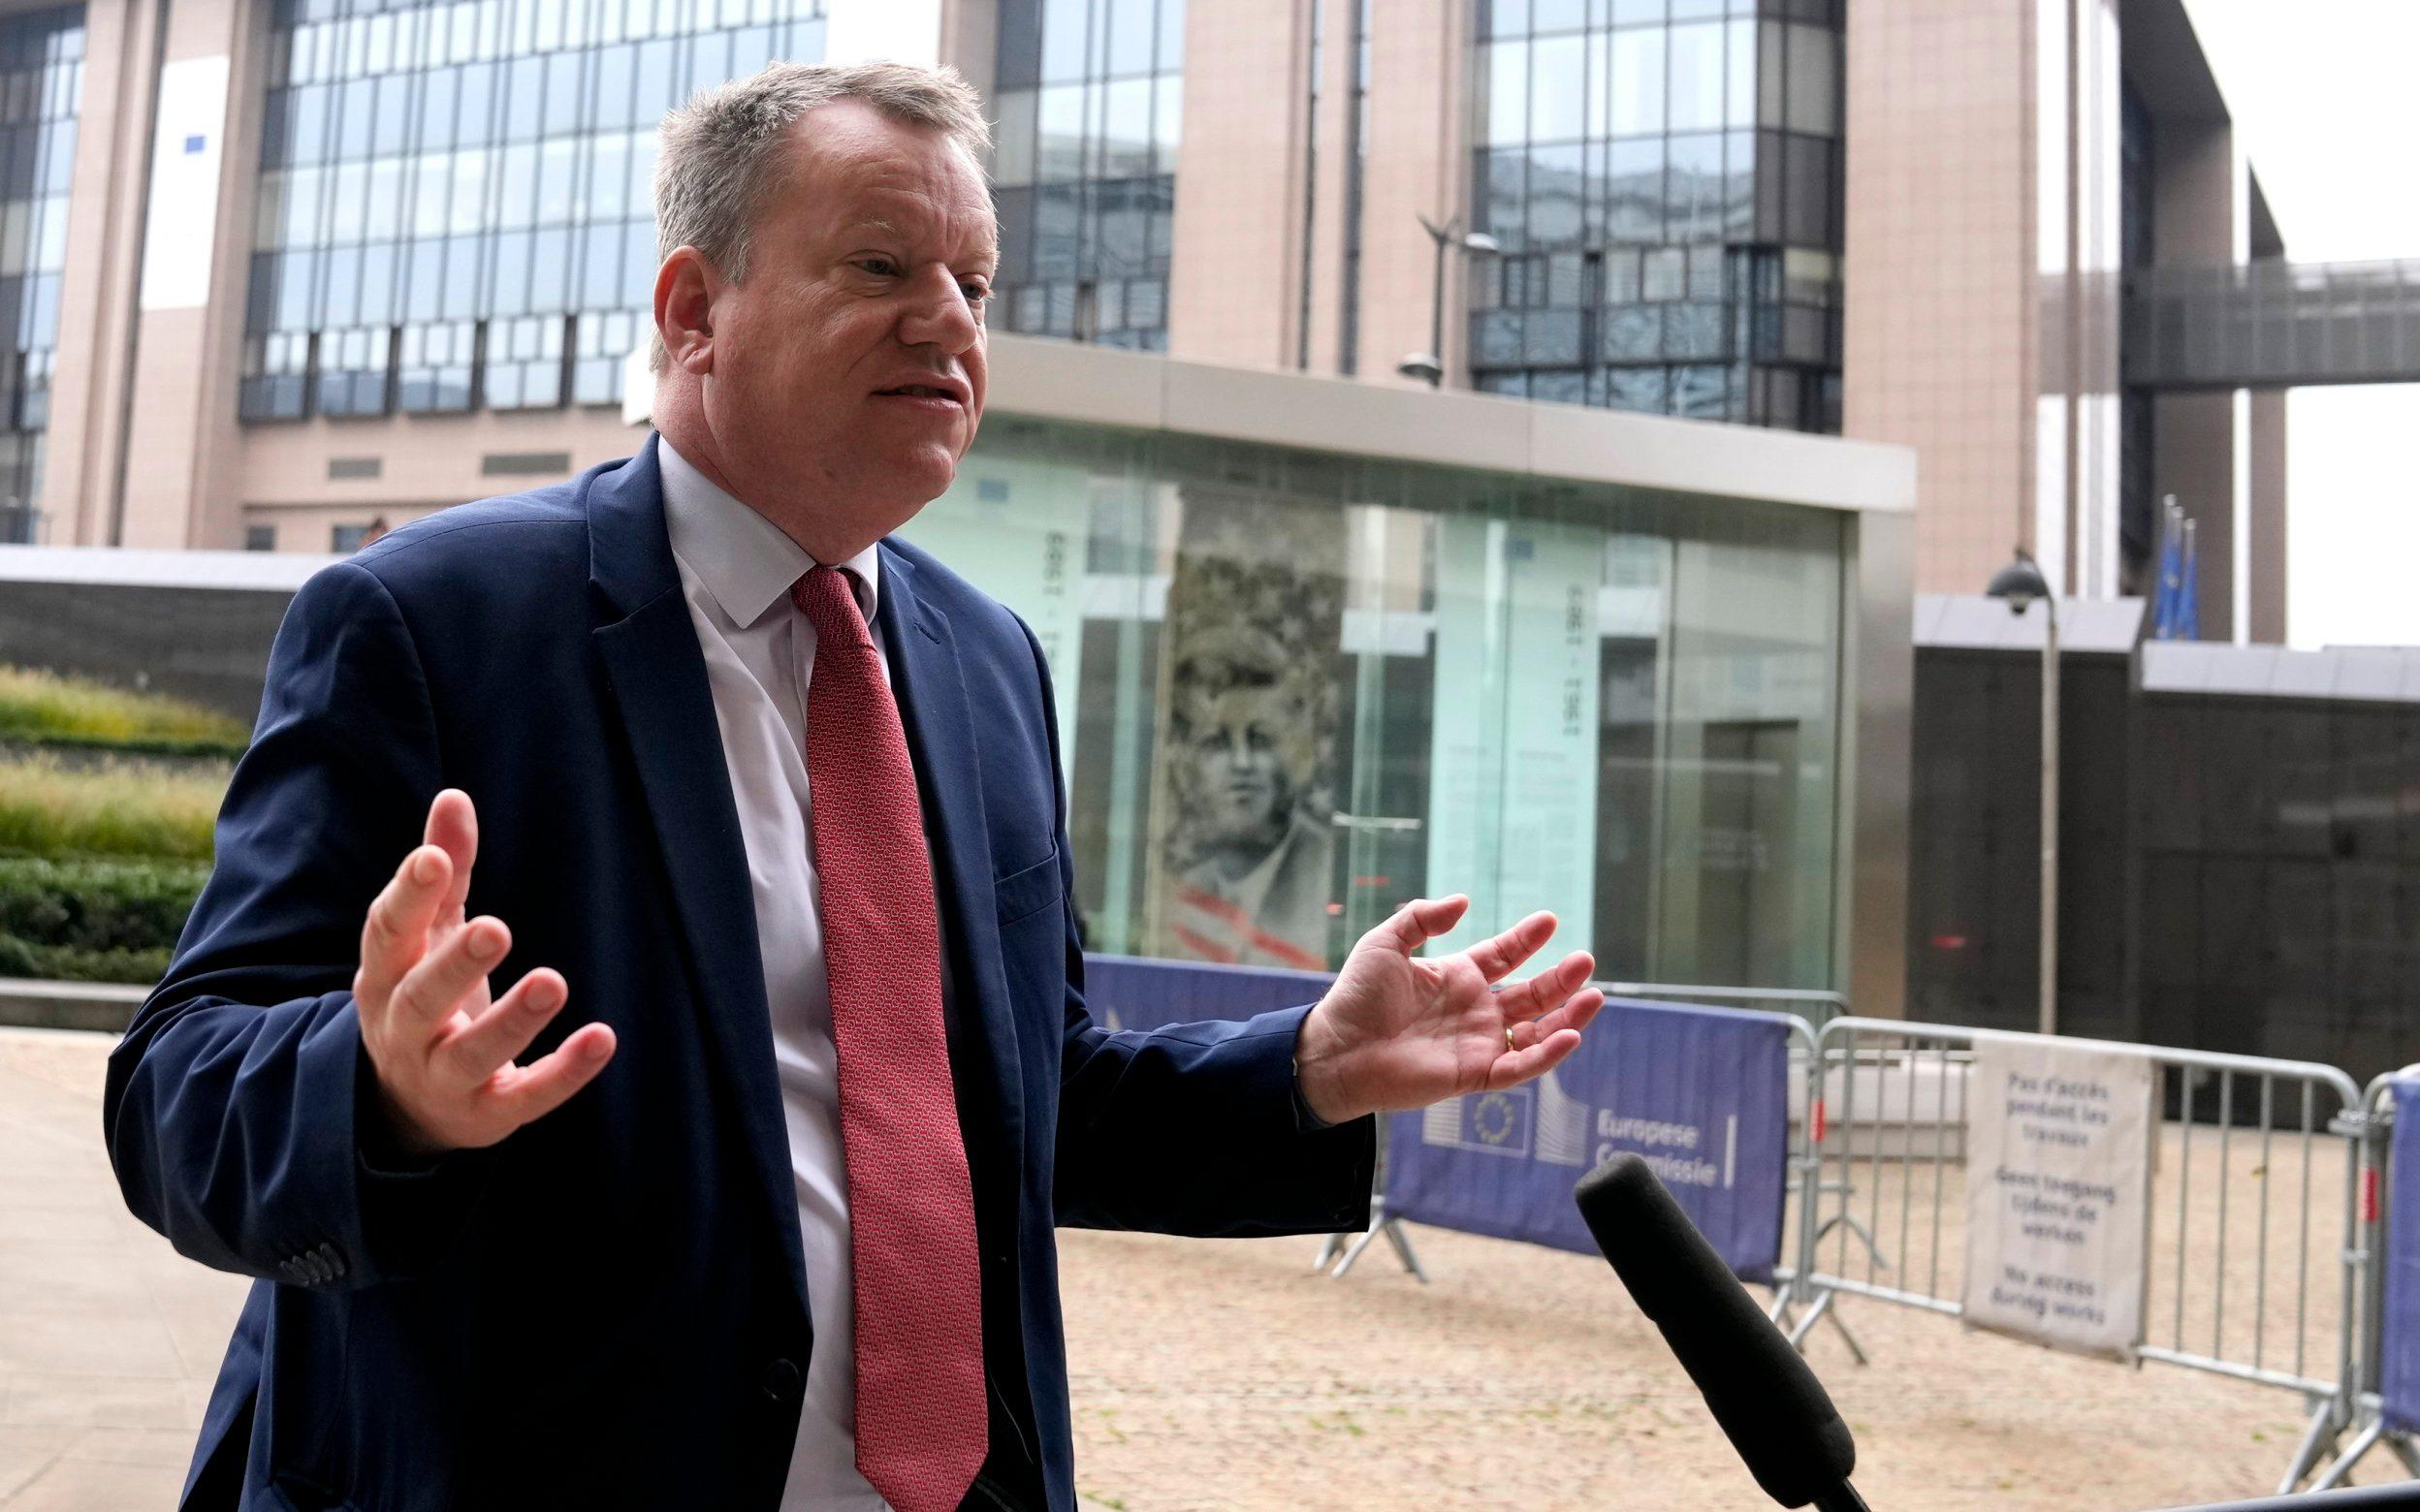 Northern Ireland Protocol will need renegotiating in future even if new Brexit deal agreed